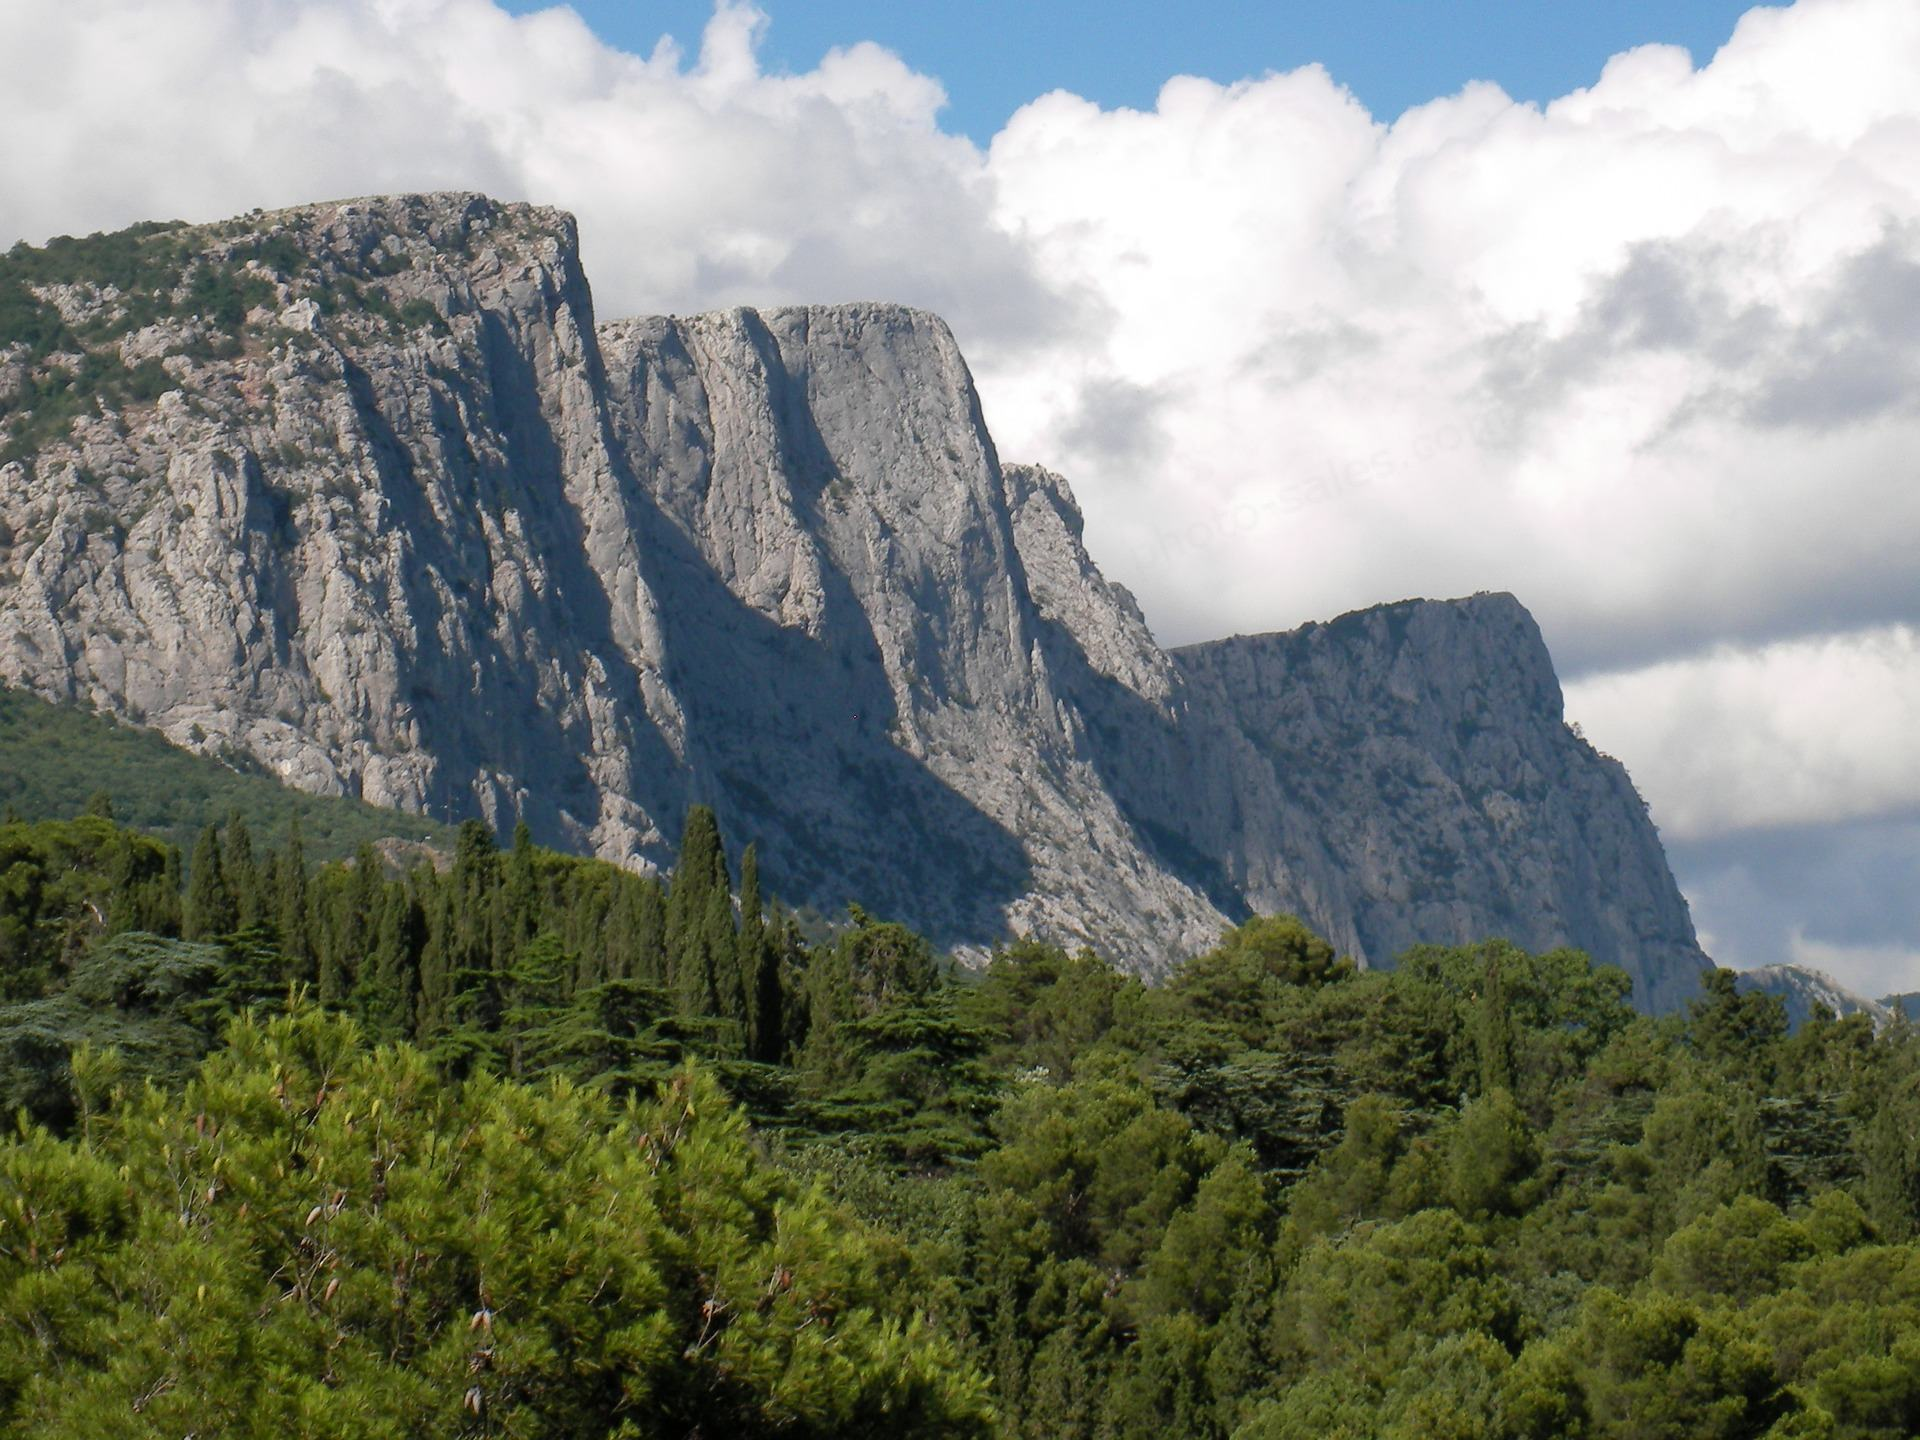 Rocky mountains of Baidaro-Kastropol wall near Foros in Crimea